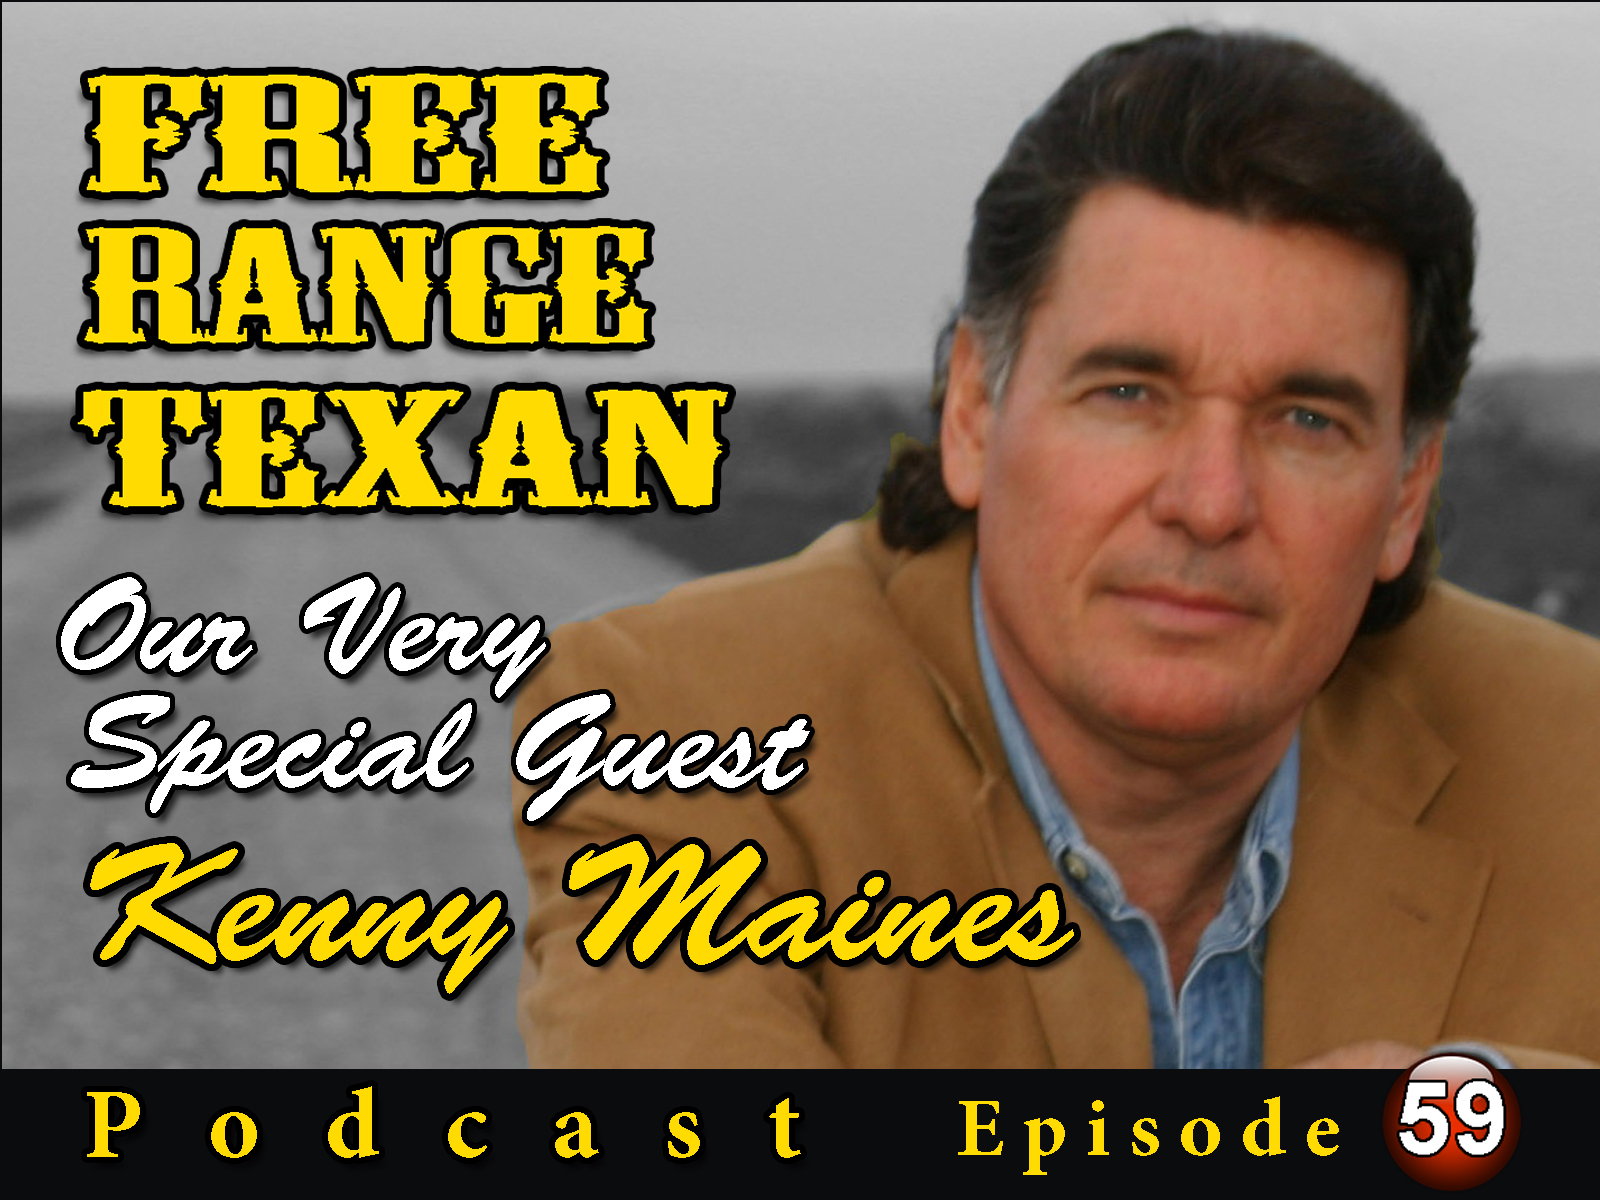 Free Range Texan Podcast Episode 59 Kenny Maines